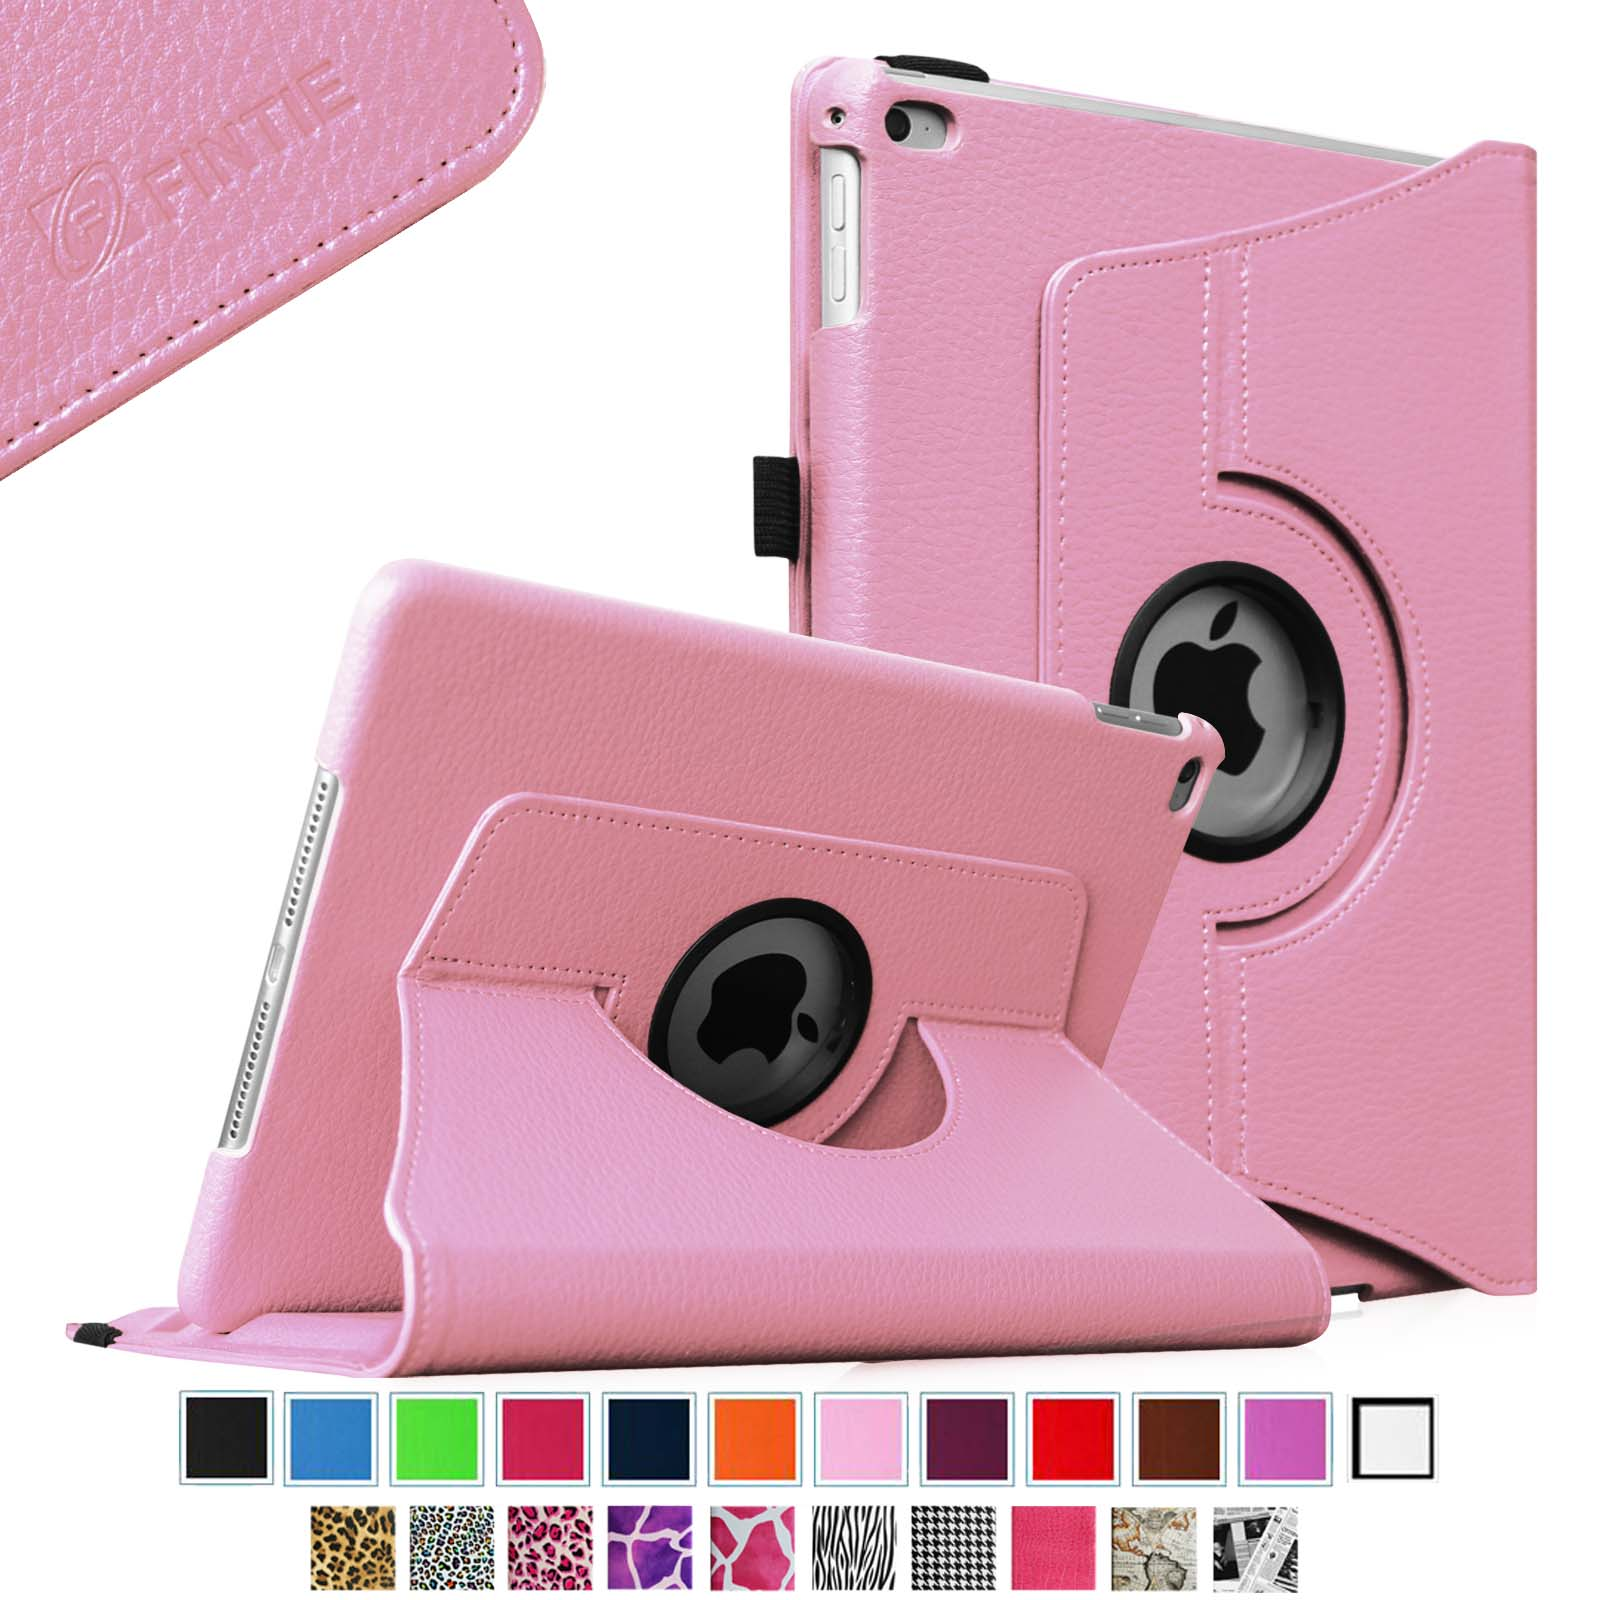 Fintie iPad Air 2 Case - 360 Degree Rotating Stand Case with Smart Cover Auto Sleep / Wake Feature, Pink